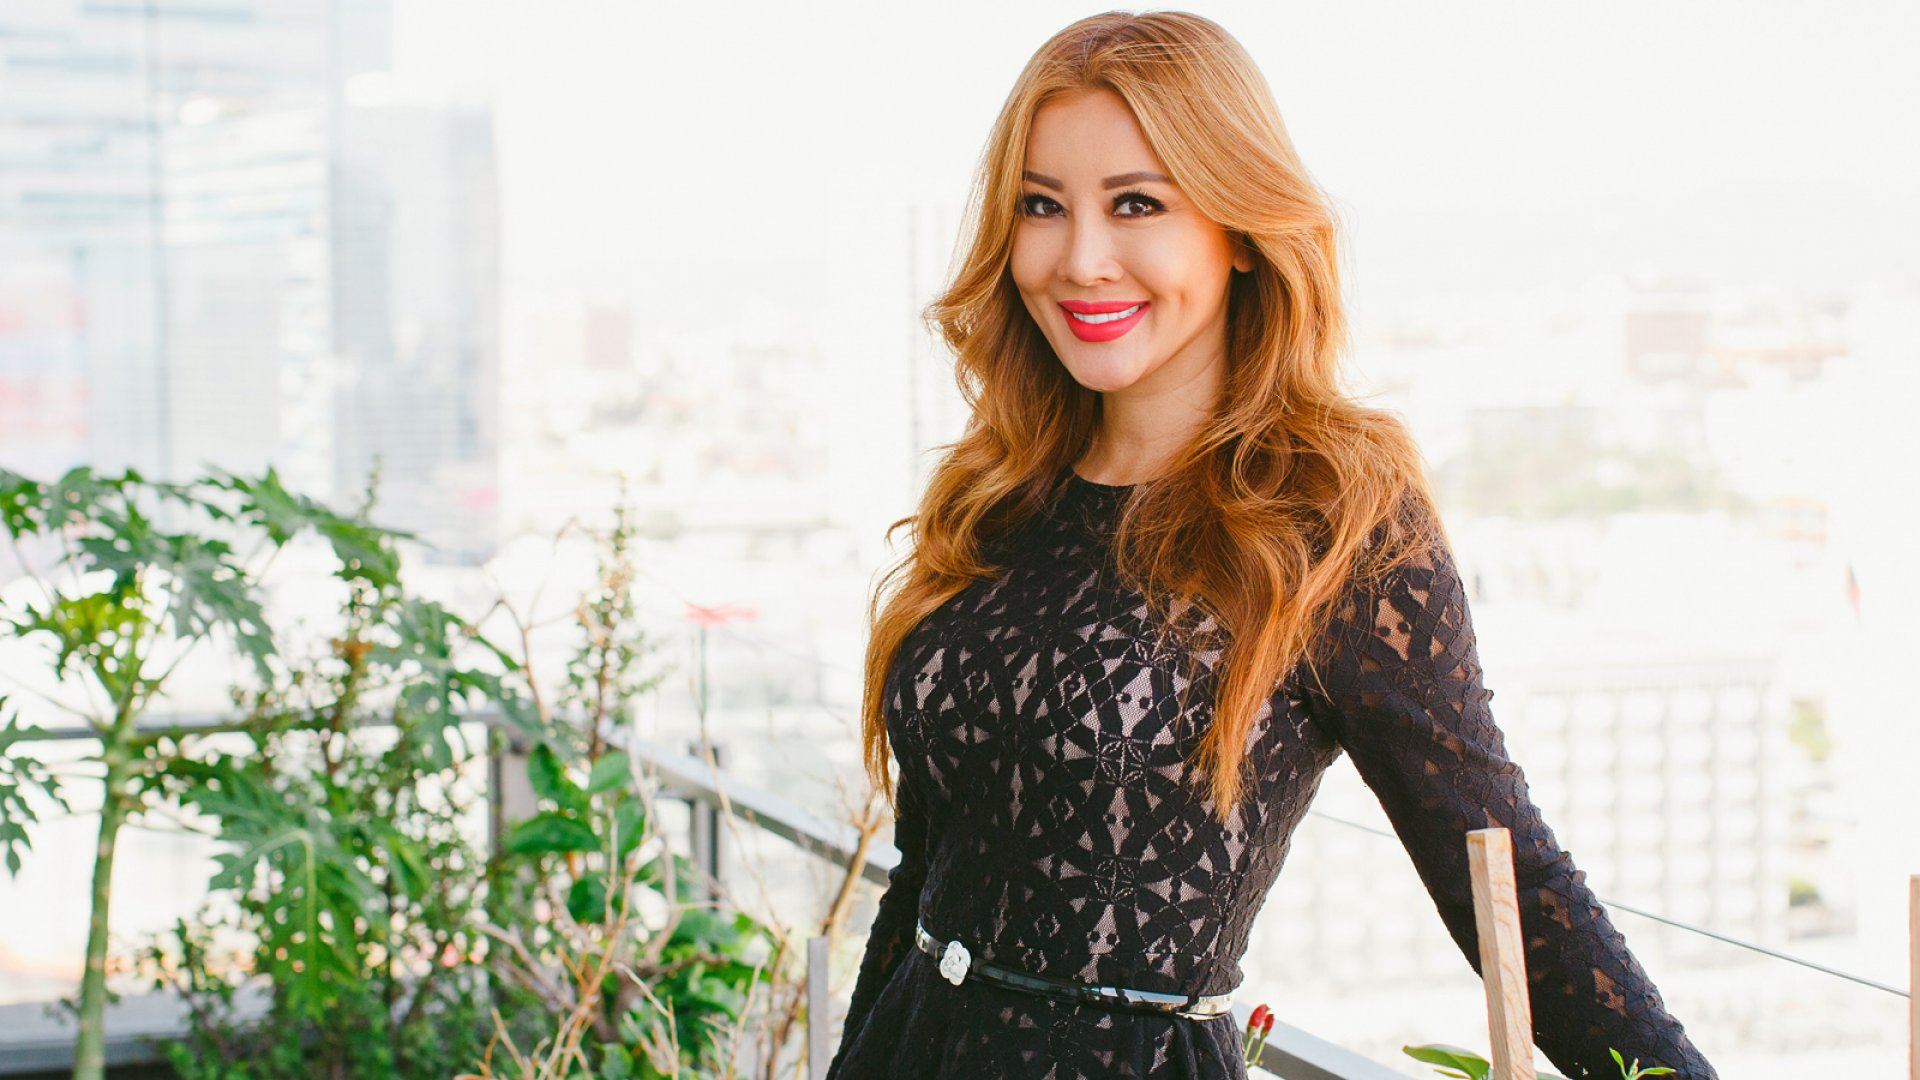 Toni Ko says her second venture, sunglasses company Perverse, follows the same business model as NYX Cosmetics, which she sold to L'Oreal for a reported $500 million.